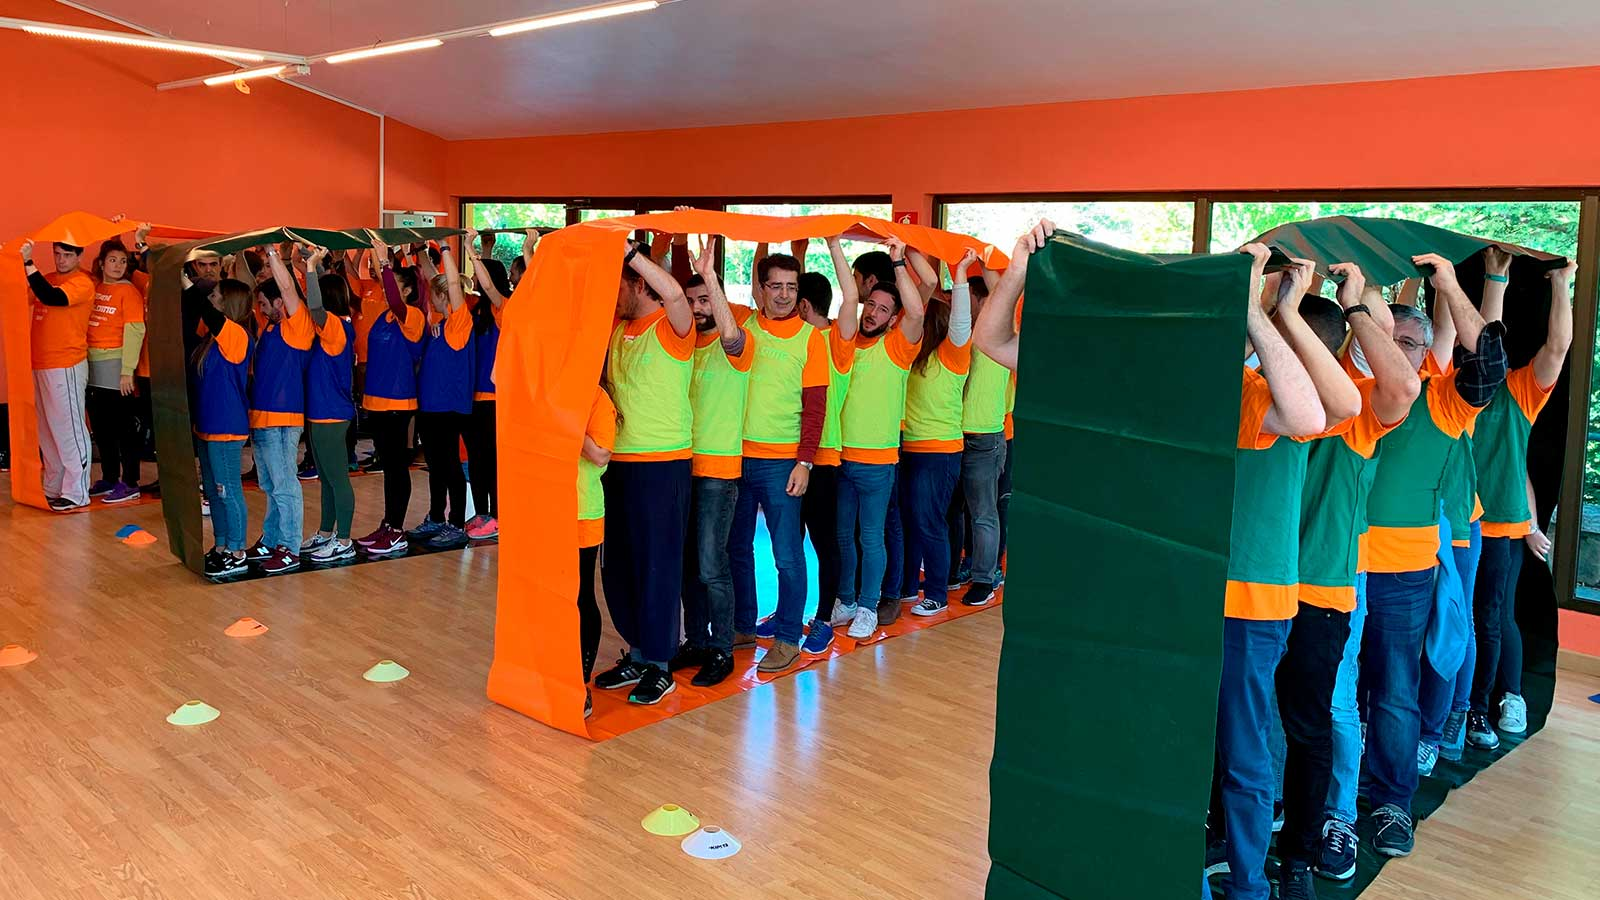 communication activity within Walmeric's Team Building